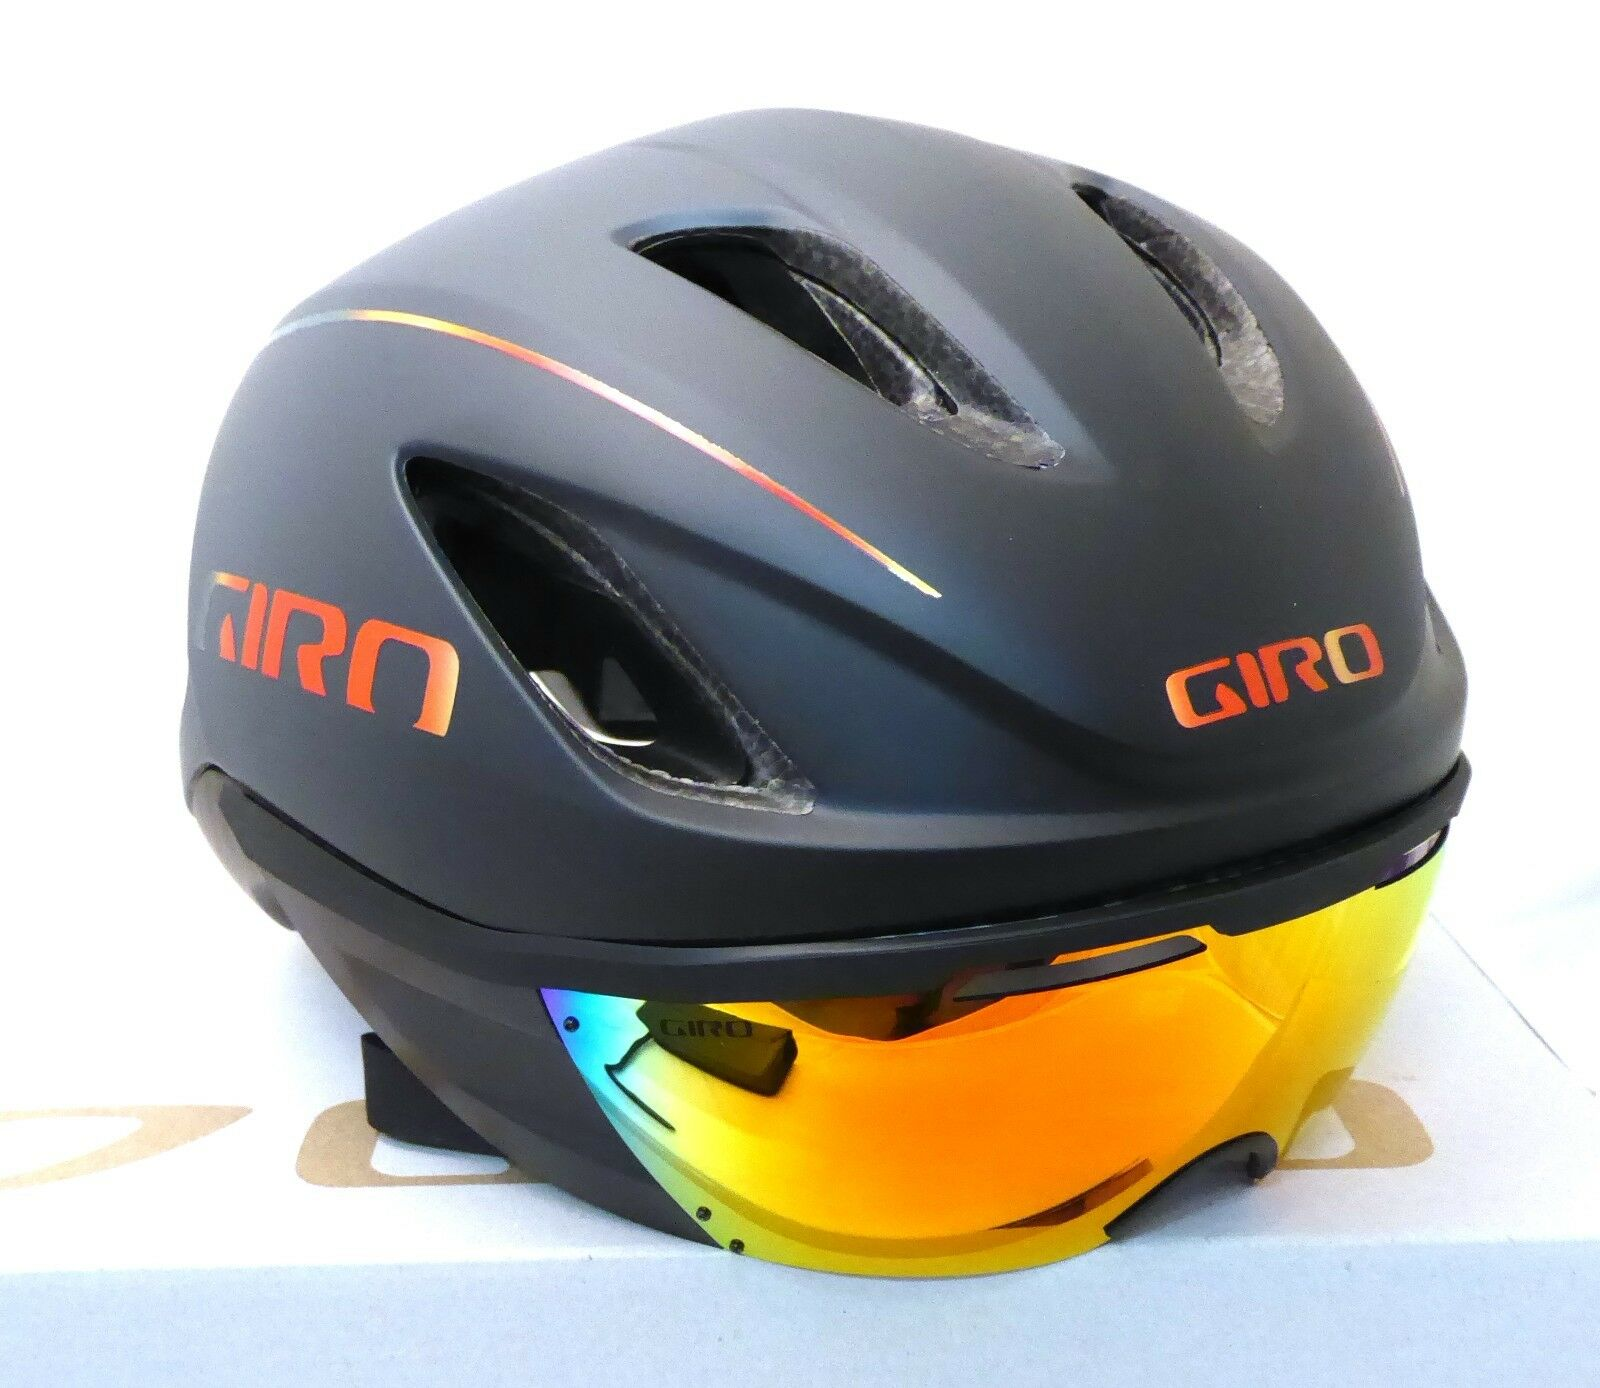 3 Sizes Giro Aerohead Mips Aero//Tri Cycle Bike Helmet Matt Black//Firechrome